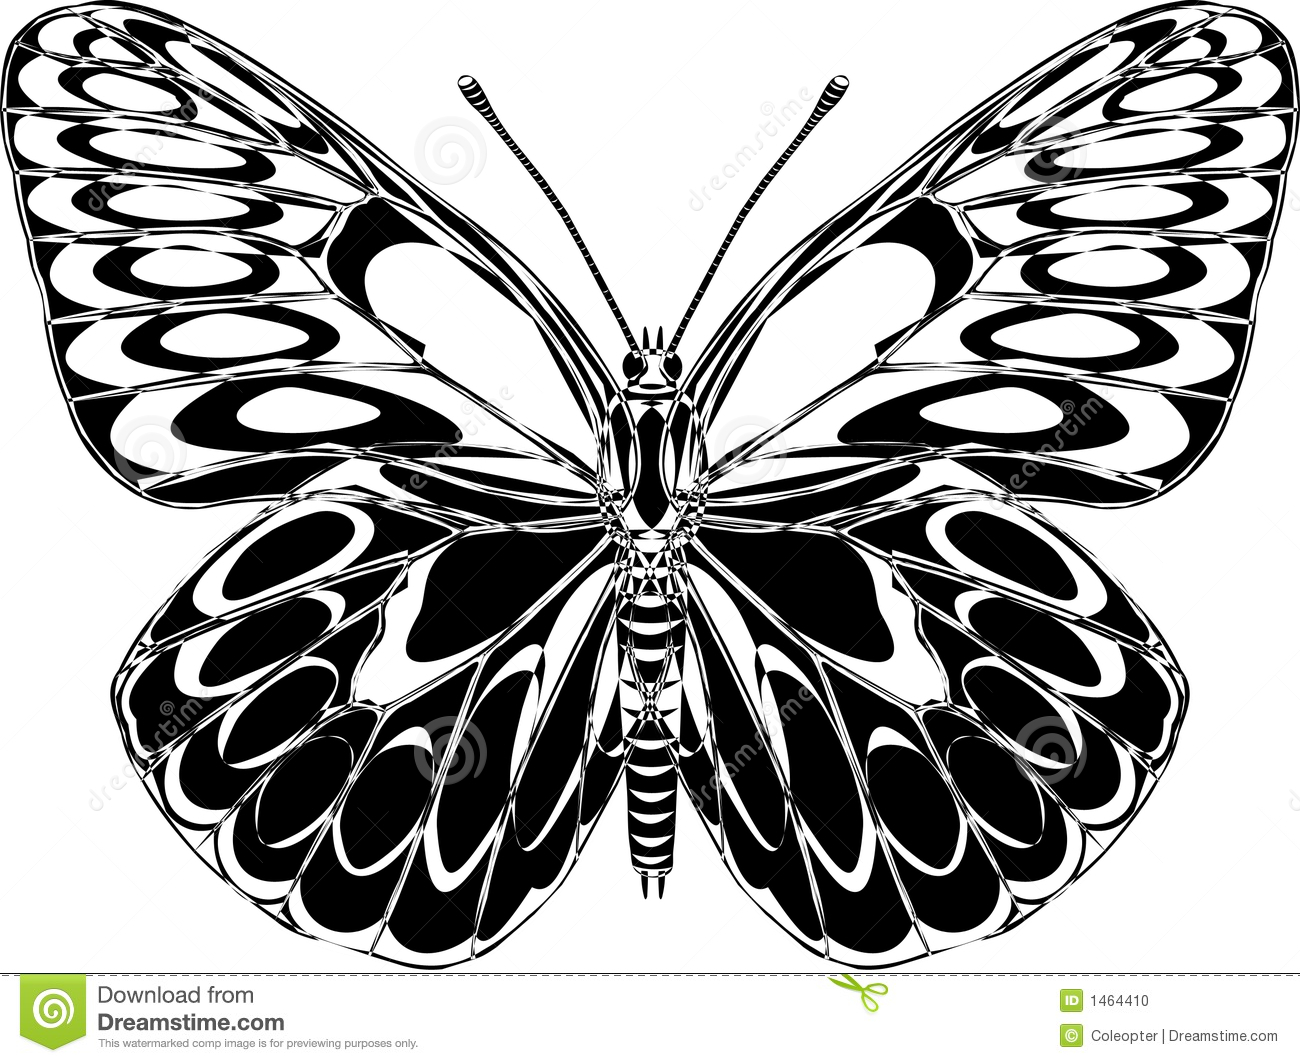 Butterfly Drawings Black and White